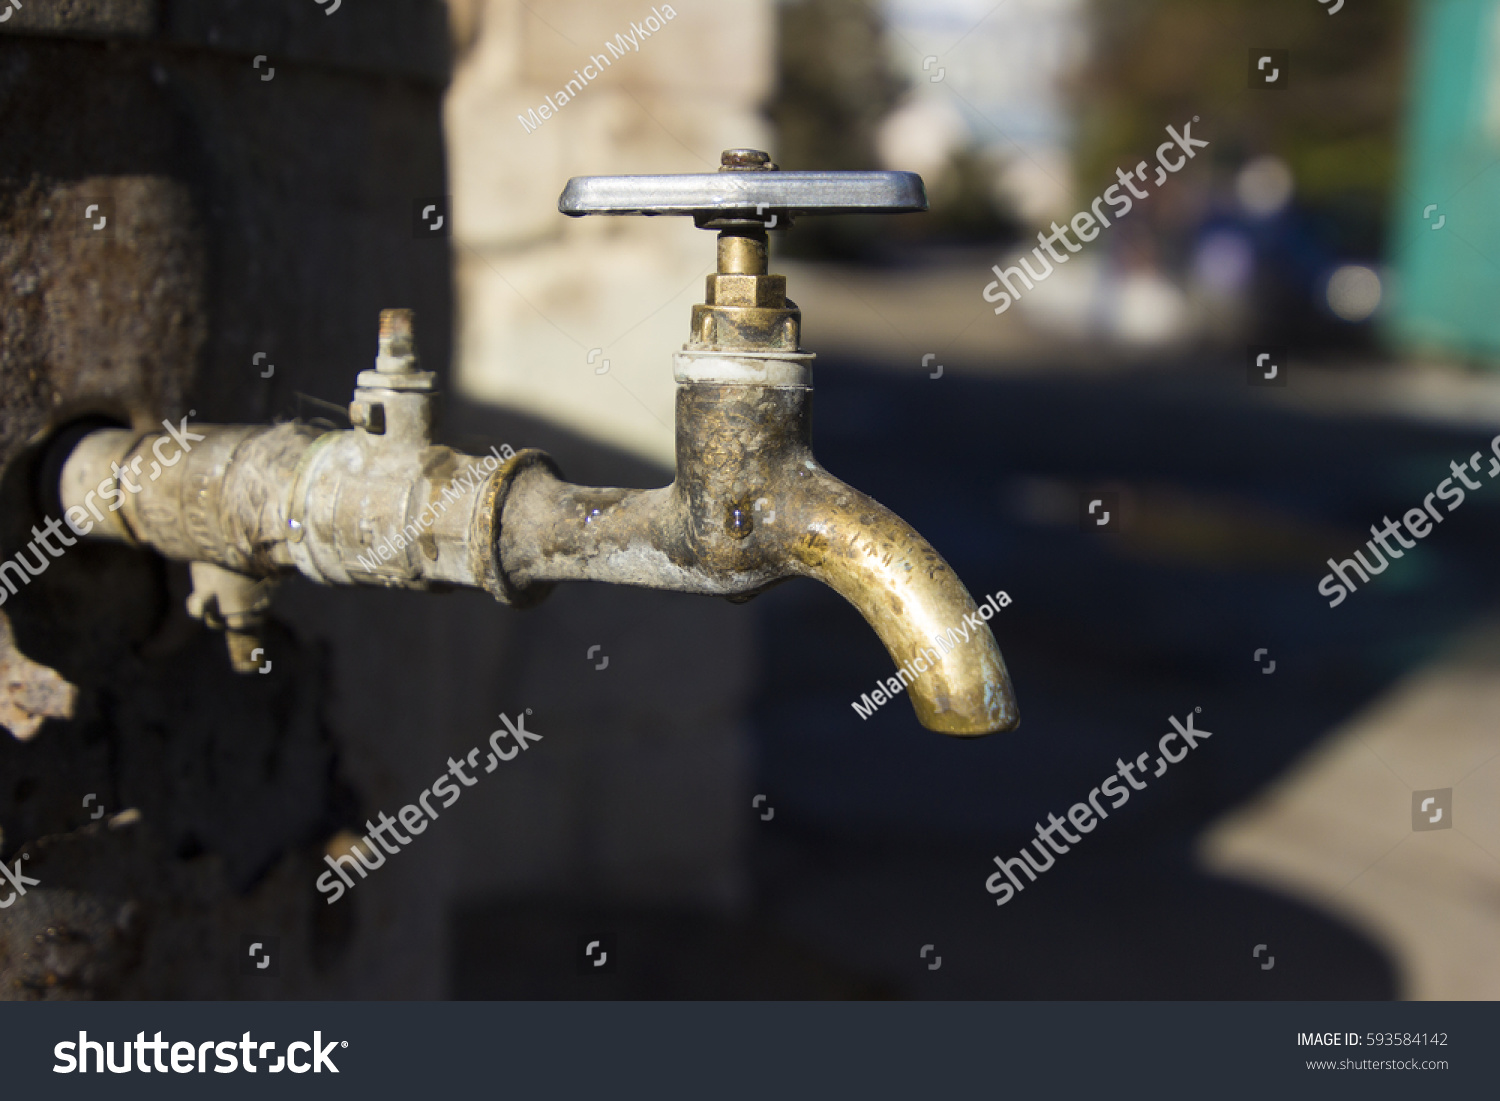 Yellow Water Faucet Stock Photo 593584142 - Shutterstock